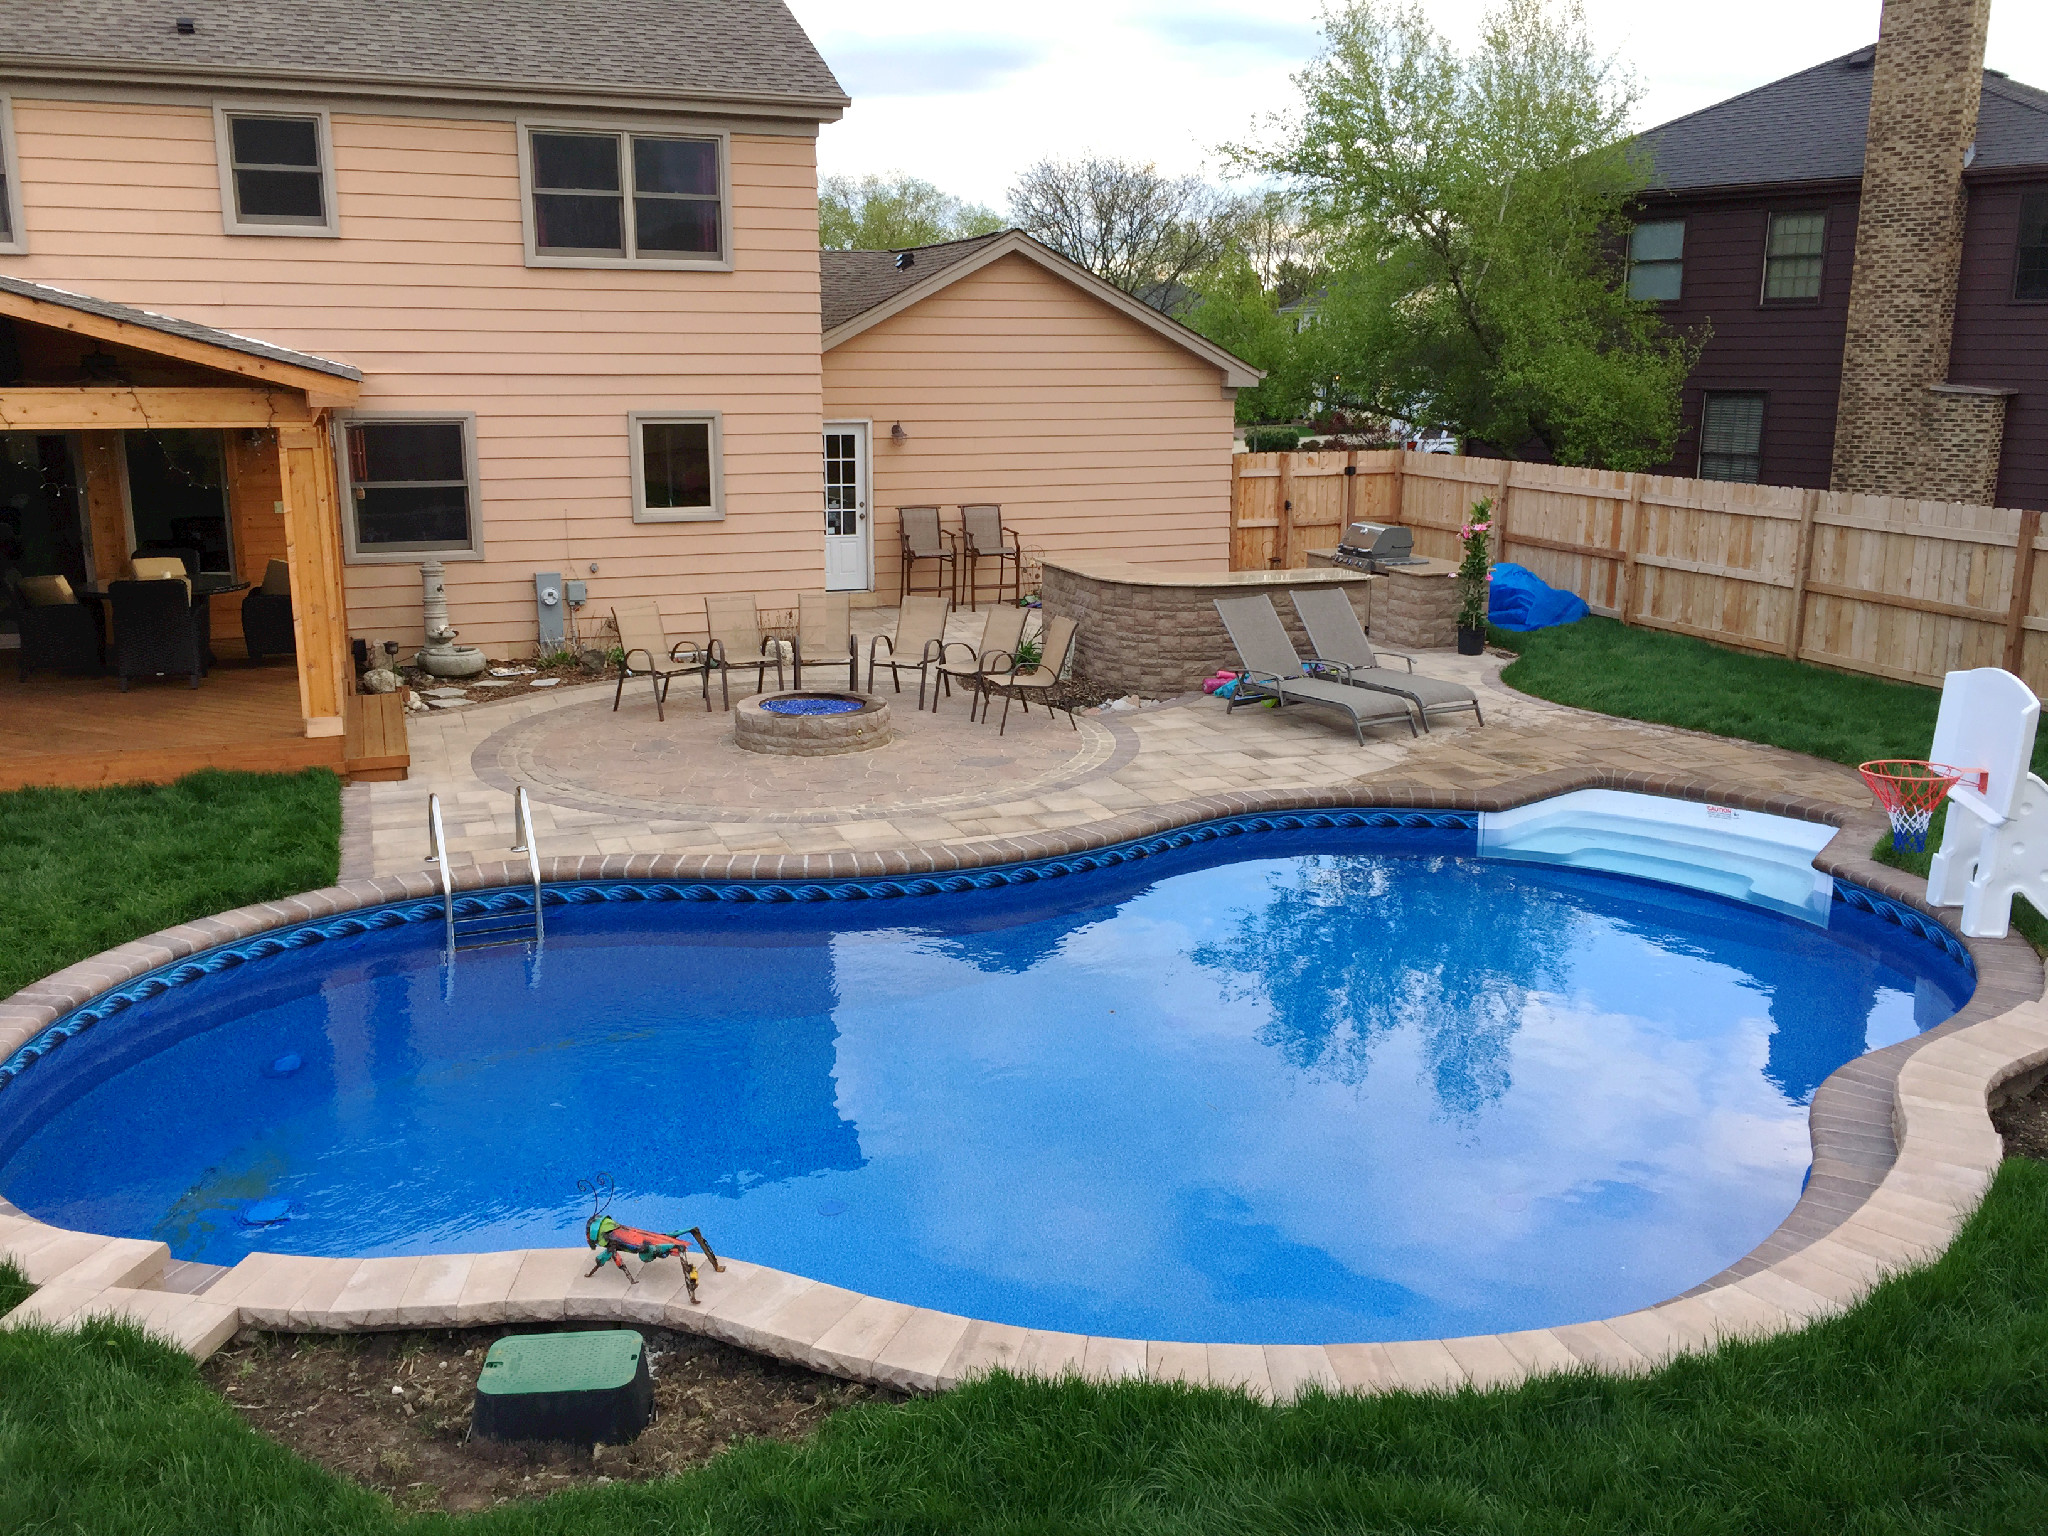 Pool Designs And Cost what does a small pool fence cost to buy When To Design Your Chicagoland Pool Deck